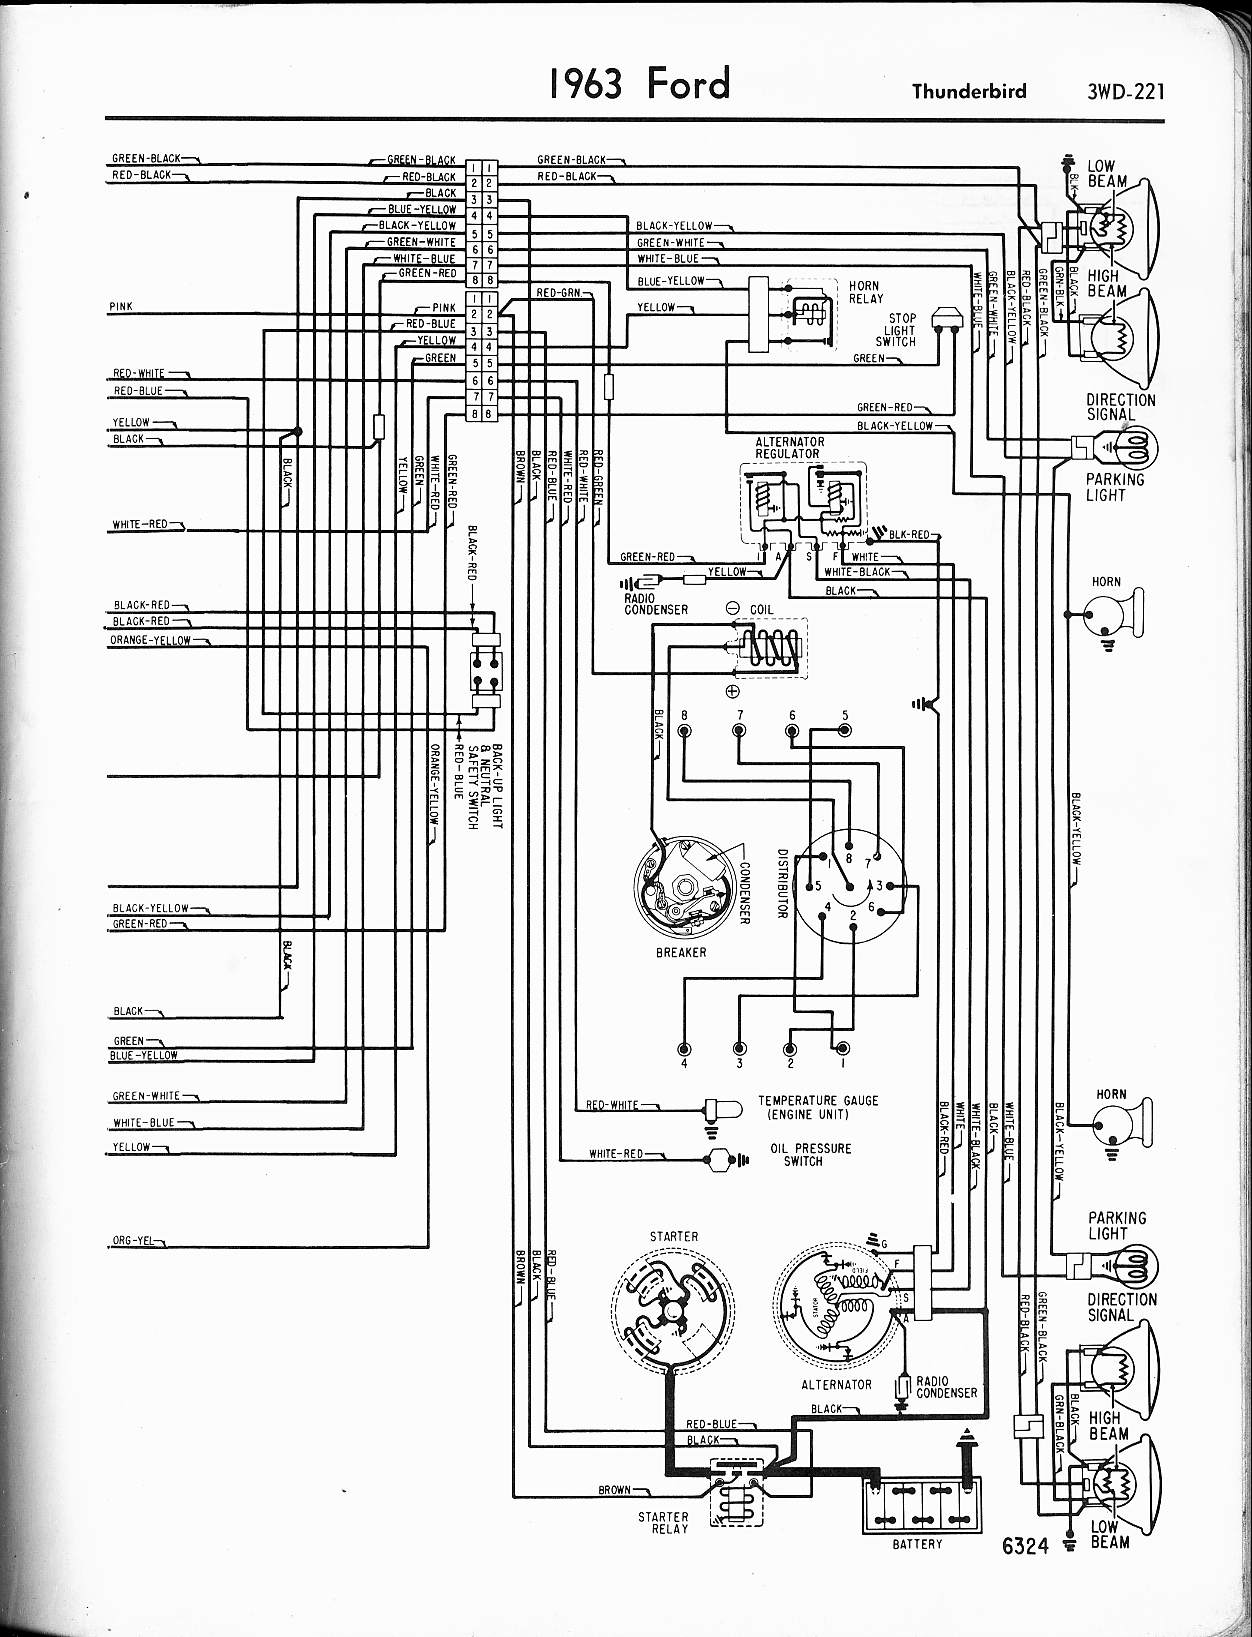 [WRG-9159] 1966 Ford Ranchero Wiring Diagram